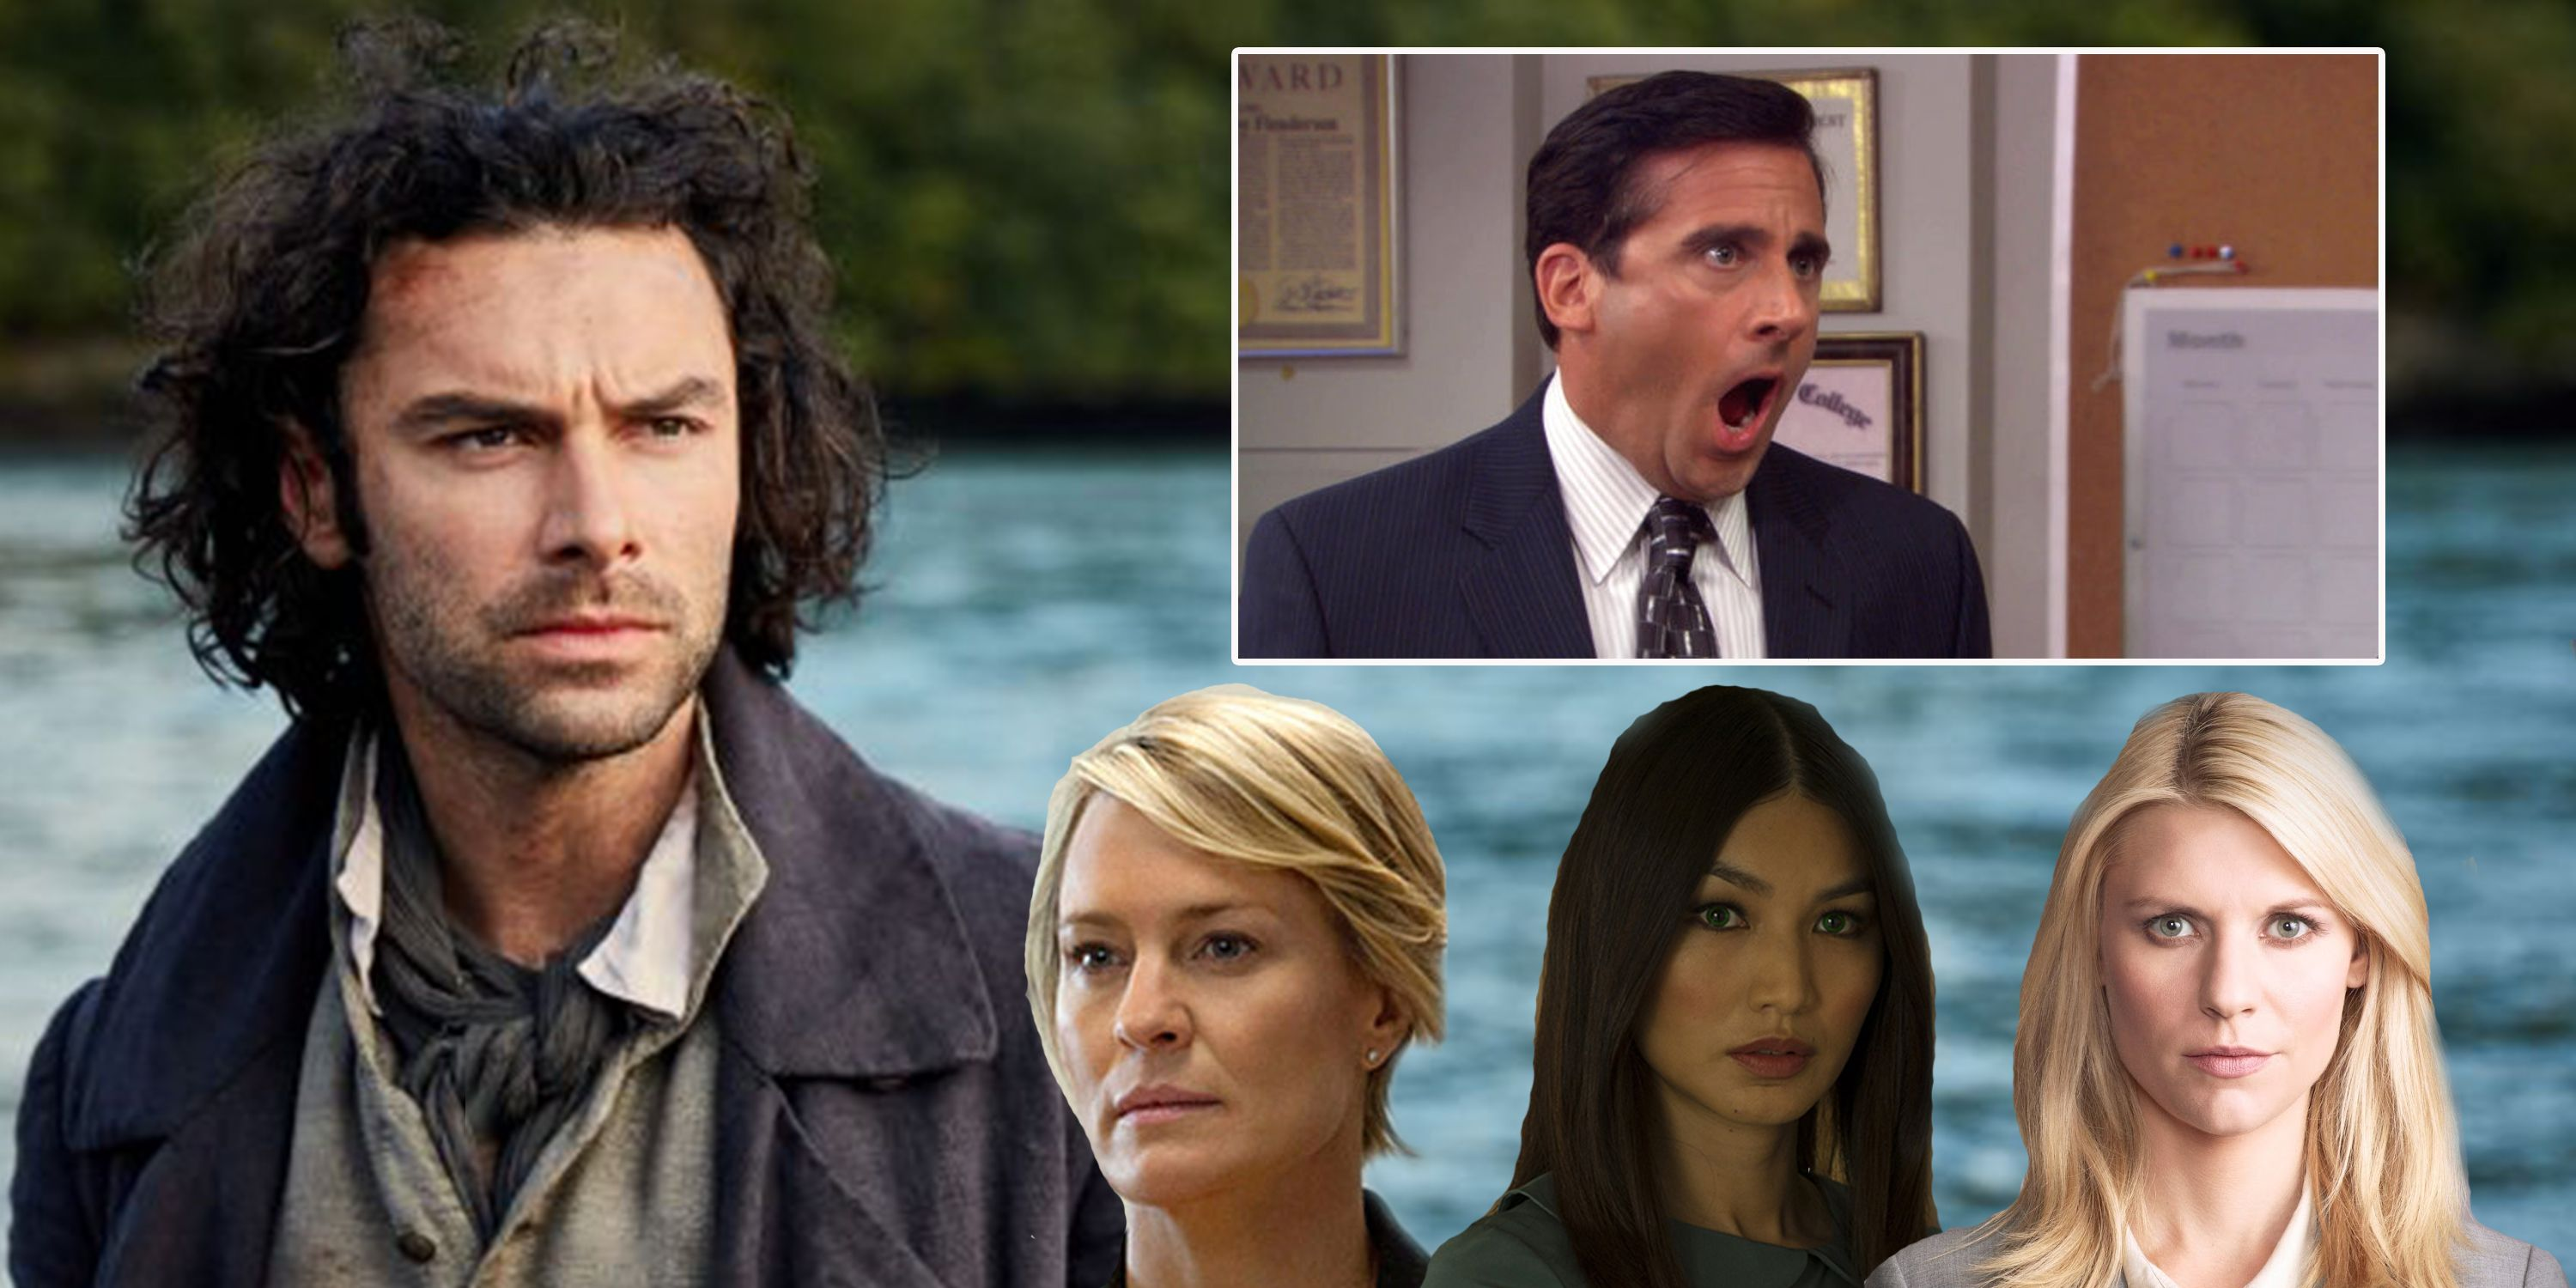 TV, remakes, Poldark, The Office US, Humans, House of Cards, Homeland